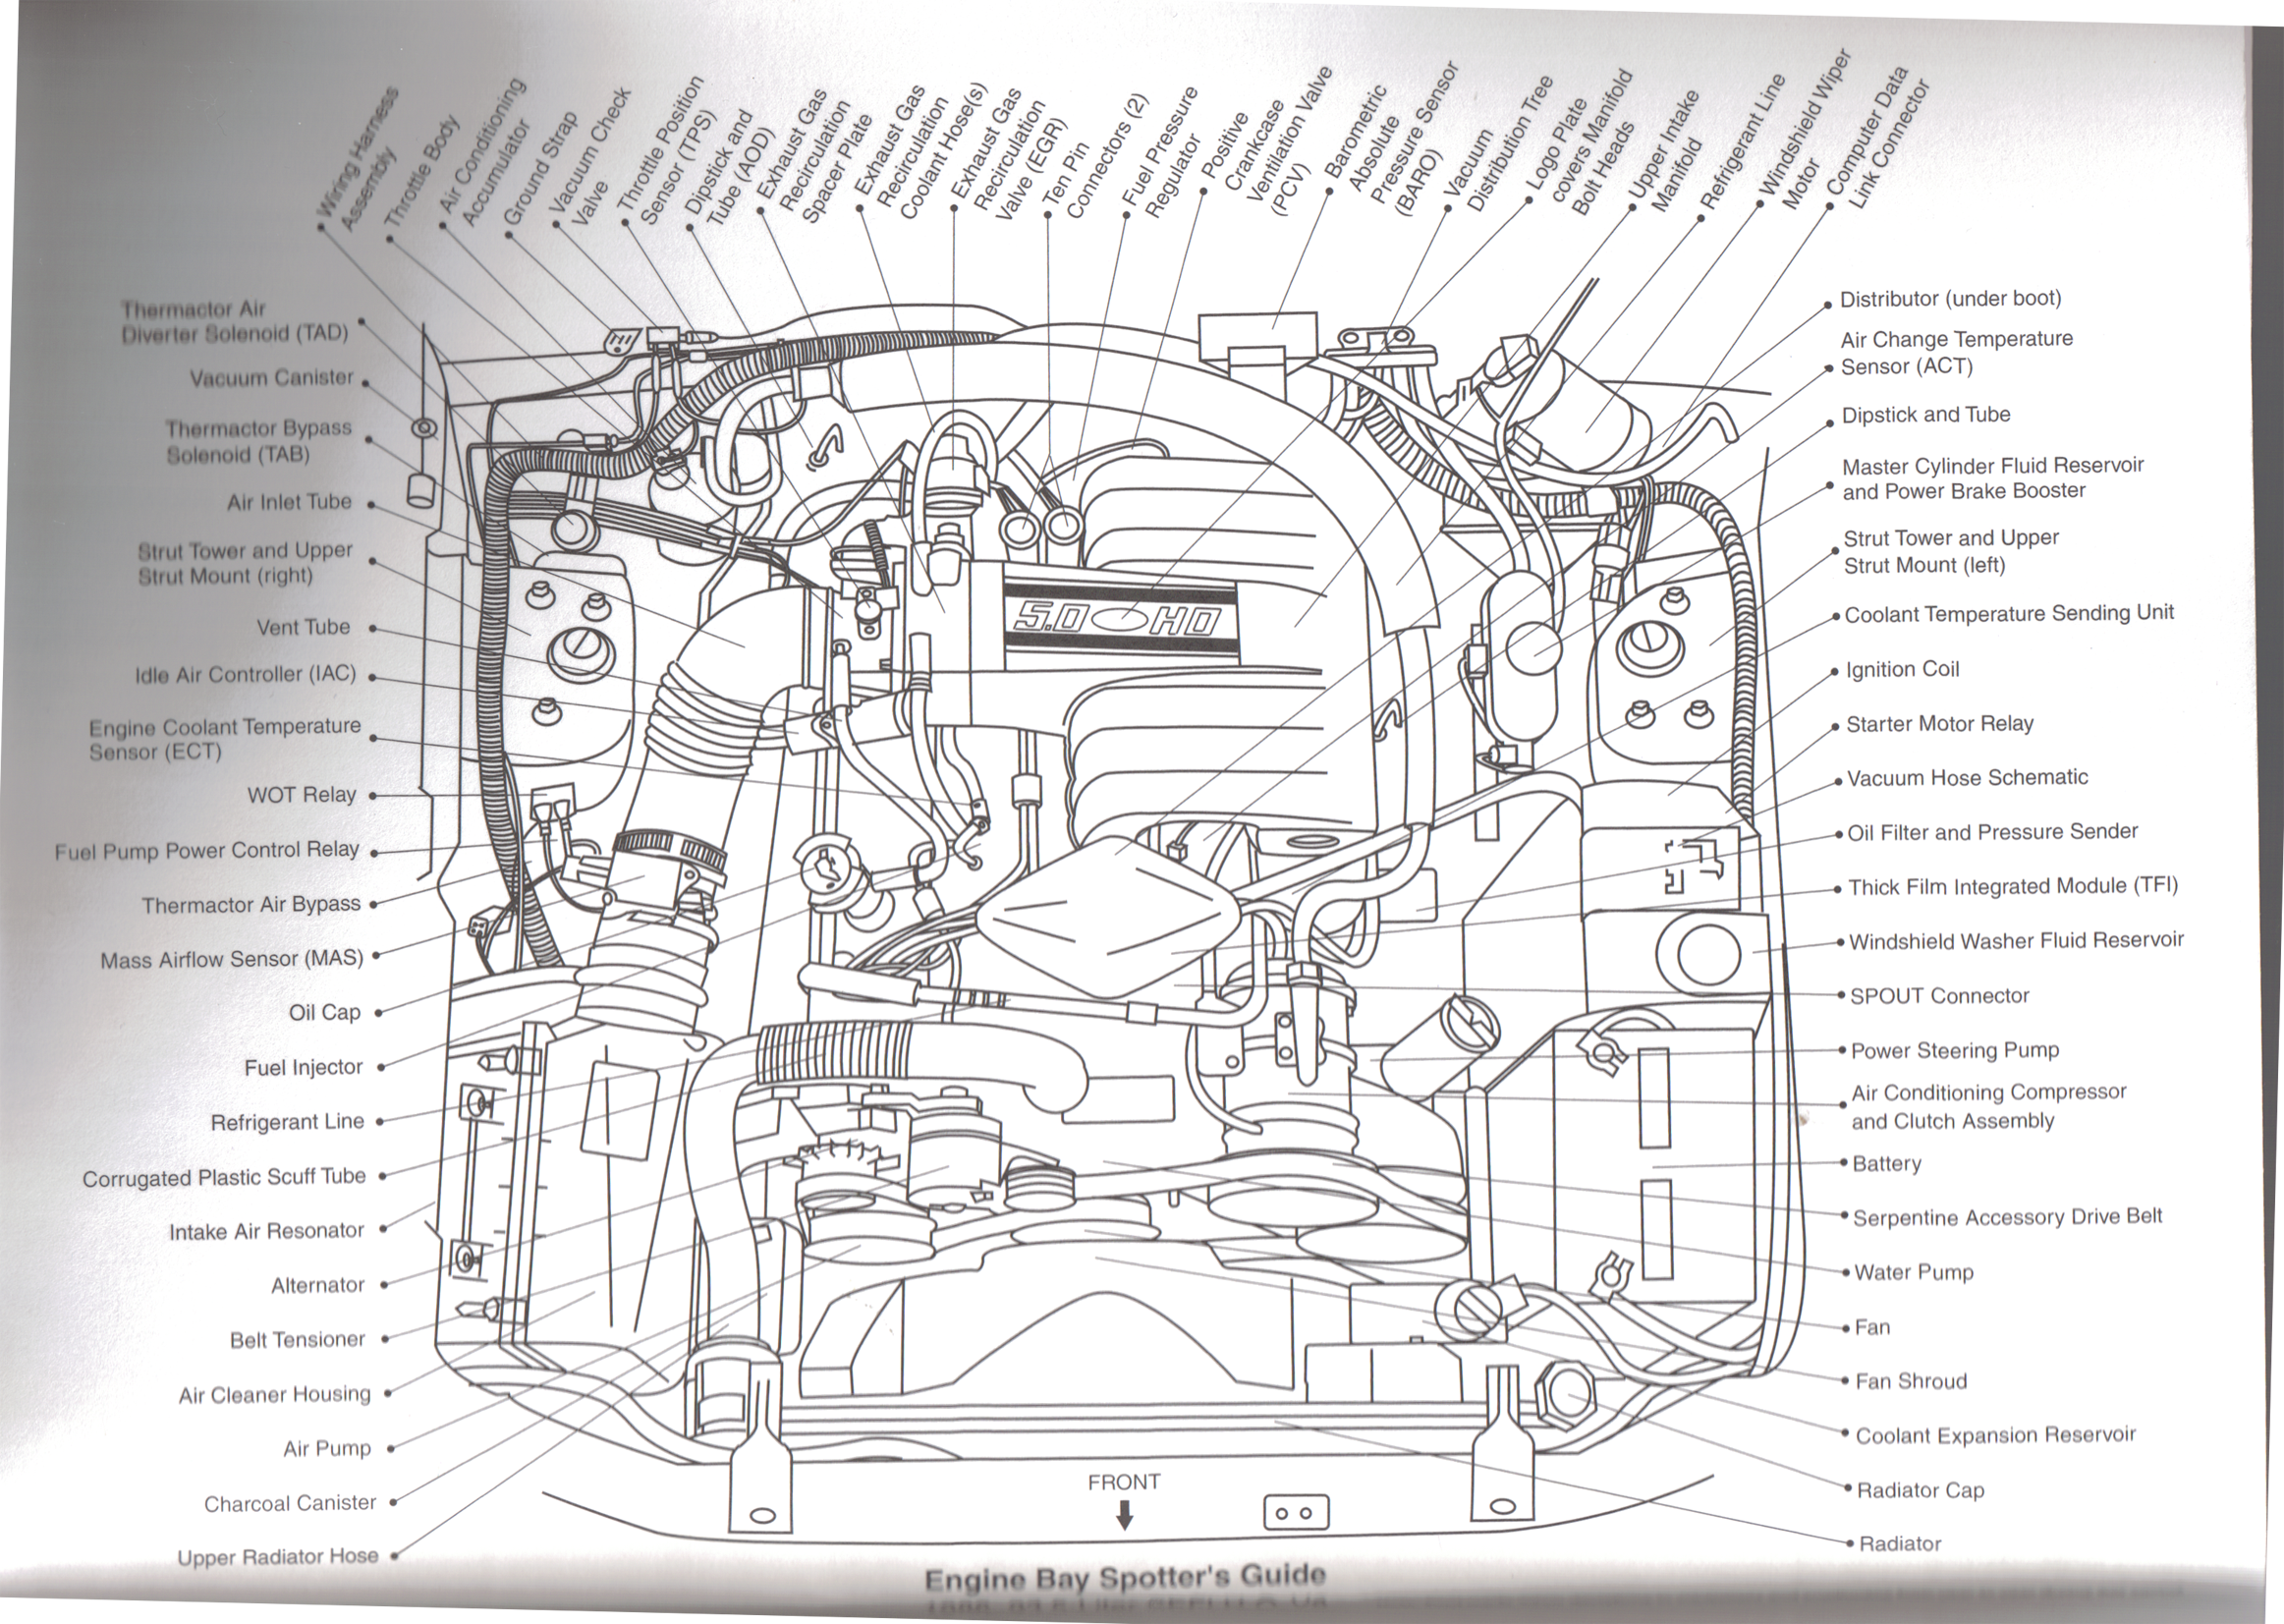 1986 Mustang Engine Wiring Diagram Just Another Blog Radio Wire For 87 Everything You Need To Know About 1979 1993 Foxbody Mustangs Rh Americanmuscle Com Power Window